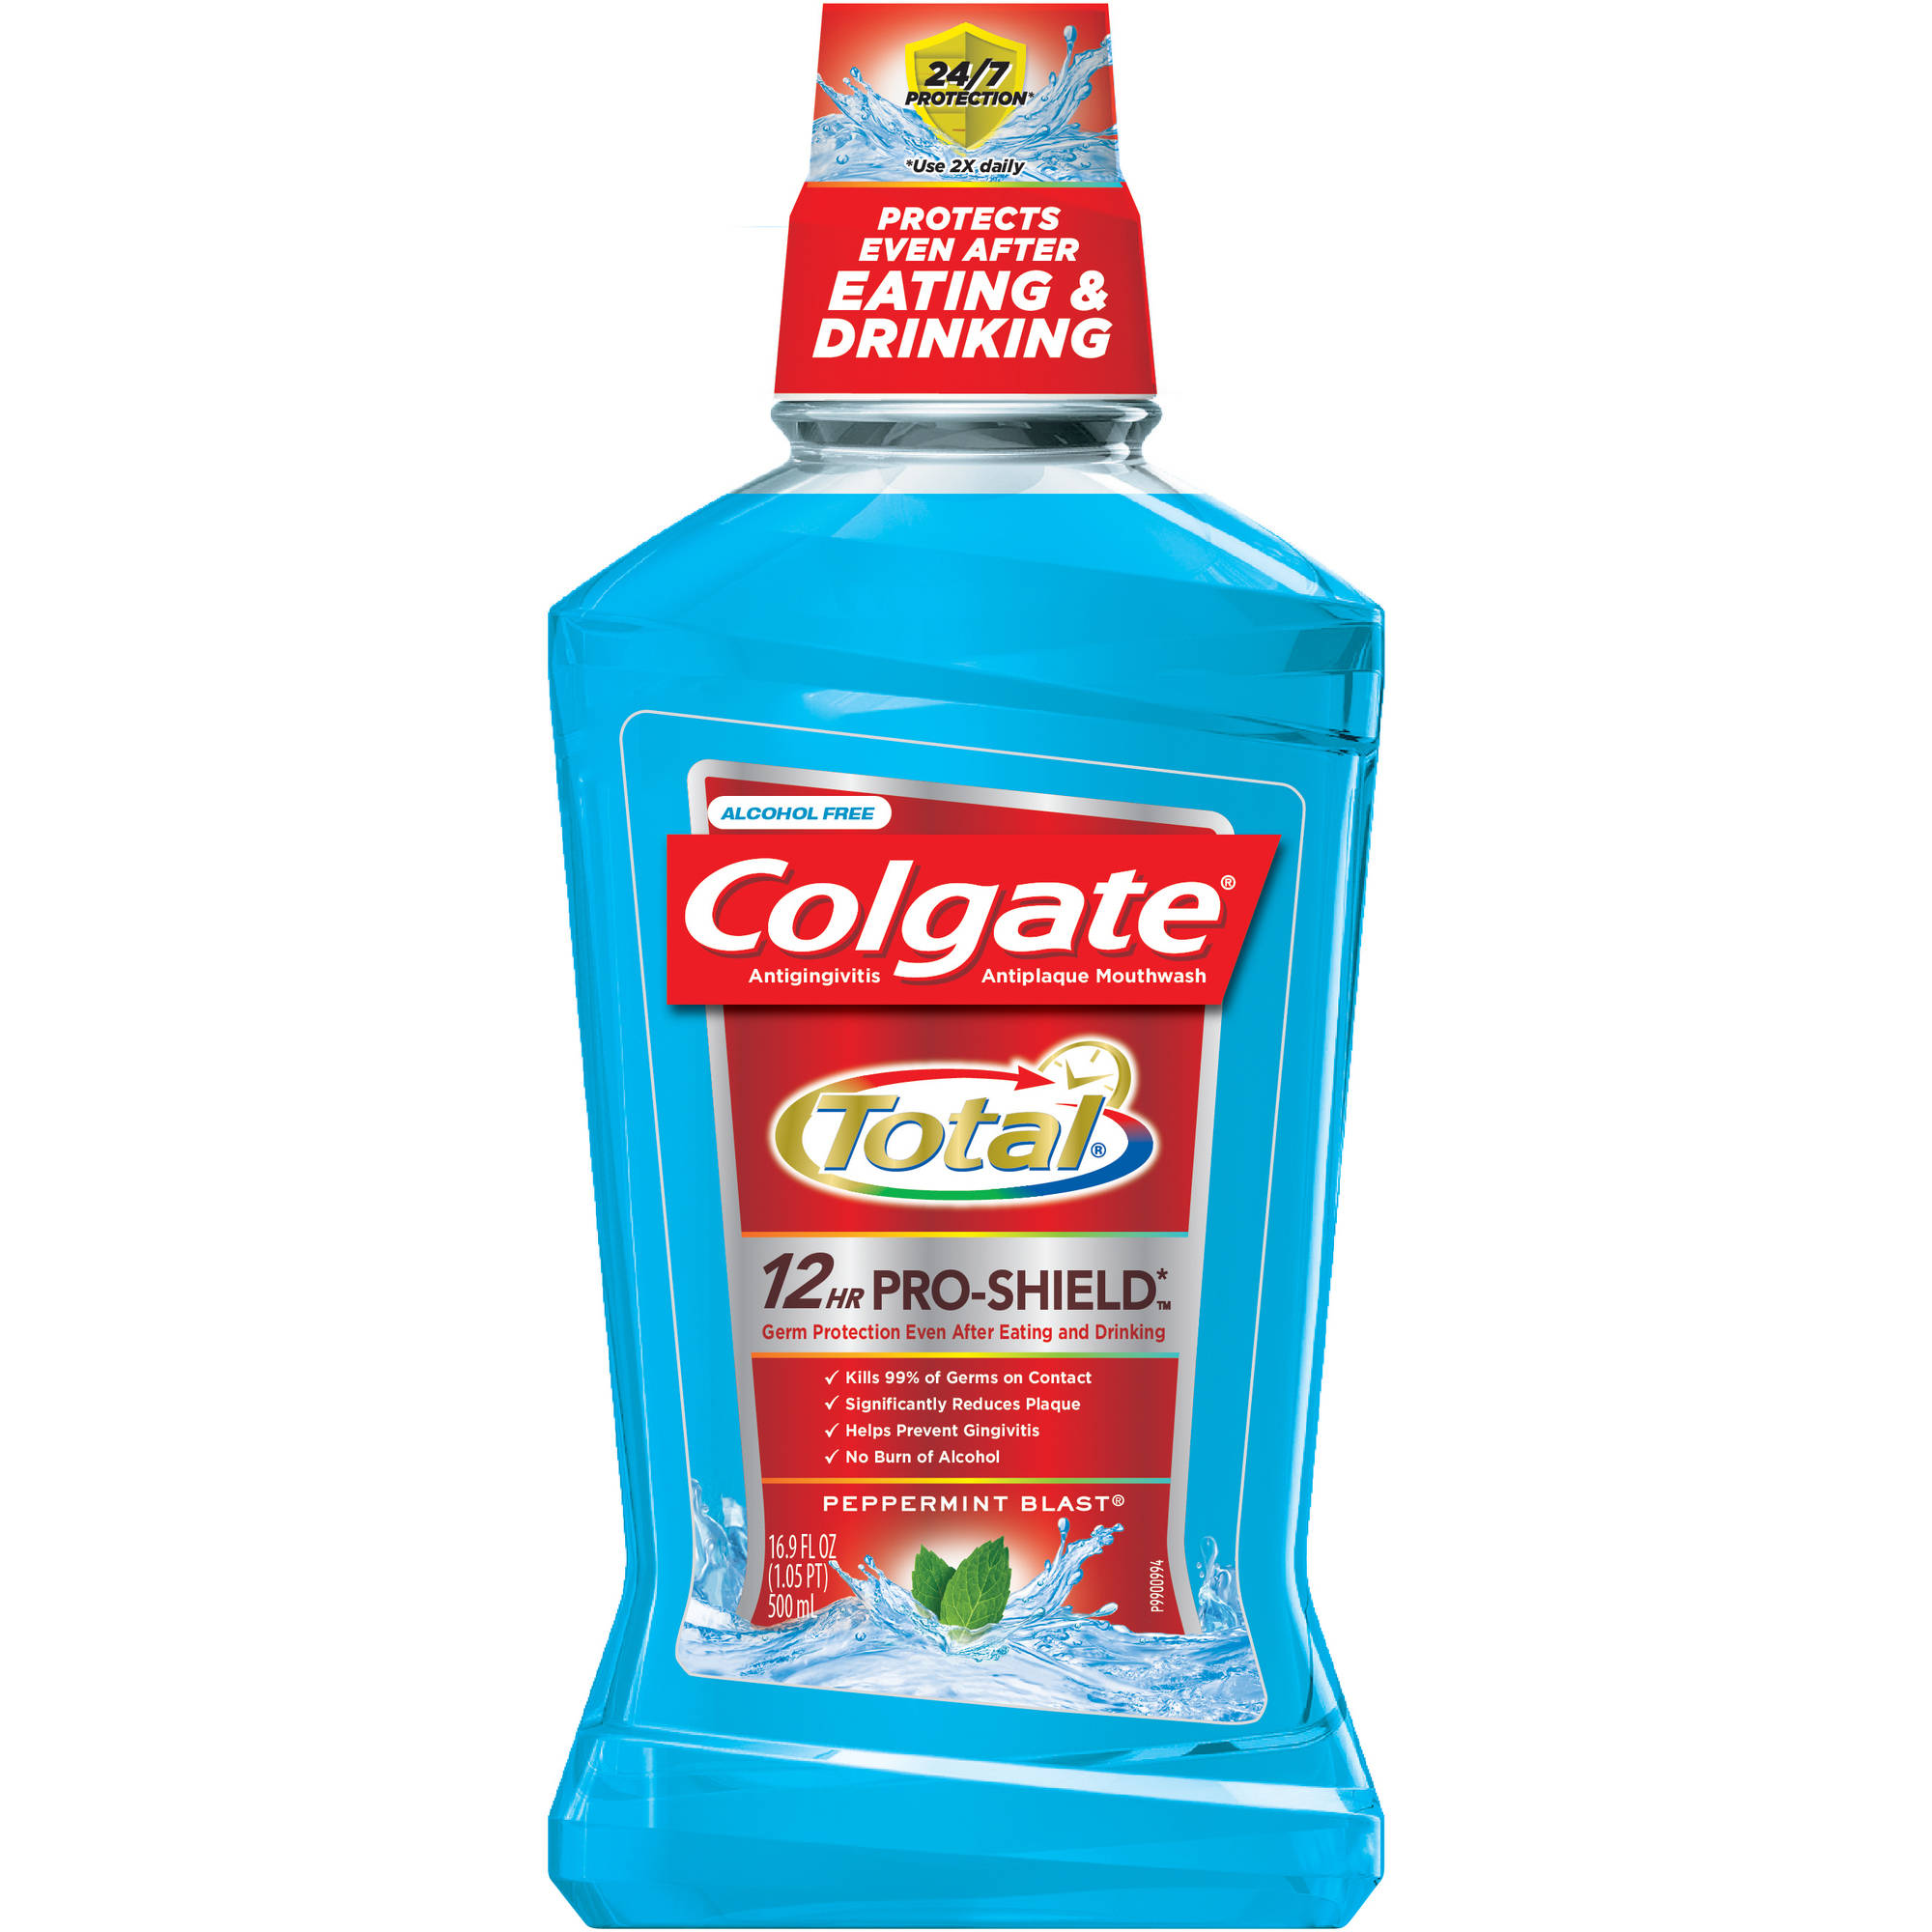 Colgate Total Advanced Pro-Shield Peppermint Blast Mouthwash, 16.9 fl oz